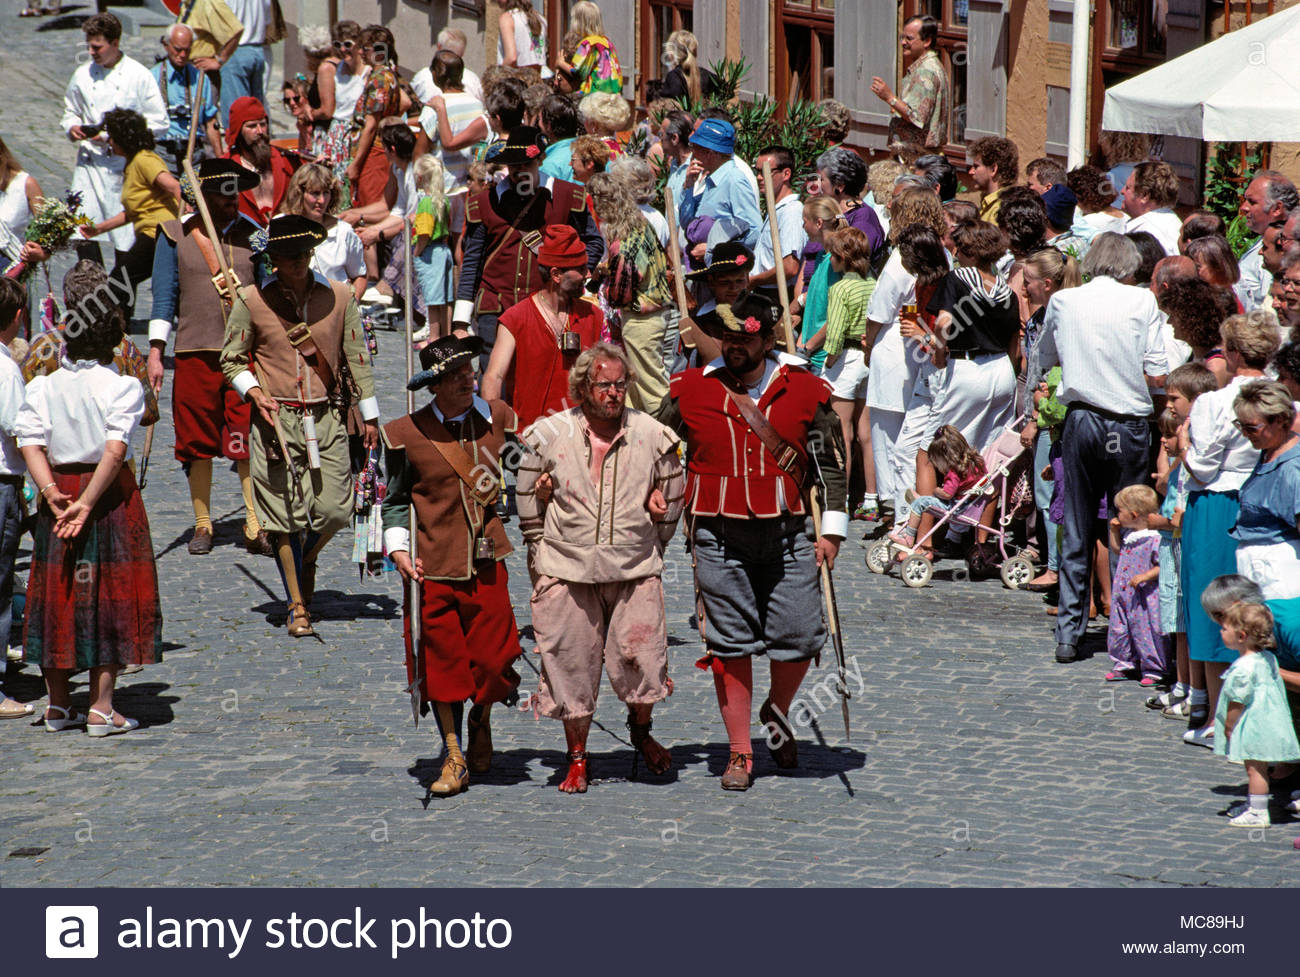 Germany. Dinkelsbuhl. Kinderzeche Dinkelsbühl - historic festival.  Street procession of male actors in period costume as prisoner escorted by guards. - Stock Image